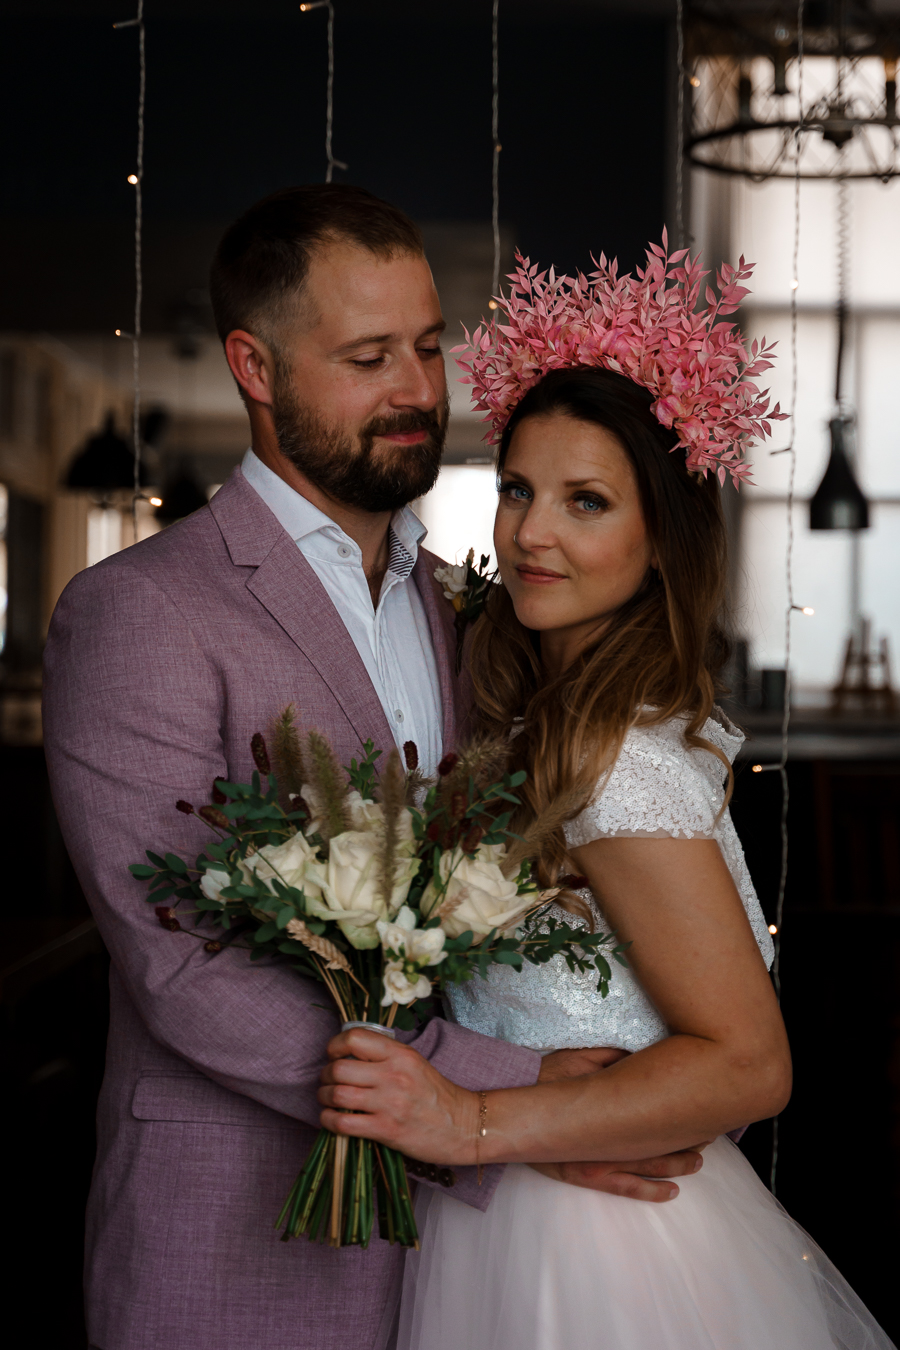 A loved-up Winchester city elopement - with adorable dogs! Photographer credit Katherine and her Camera (21)